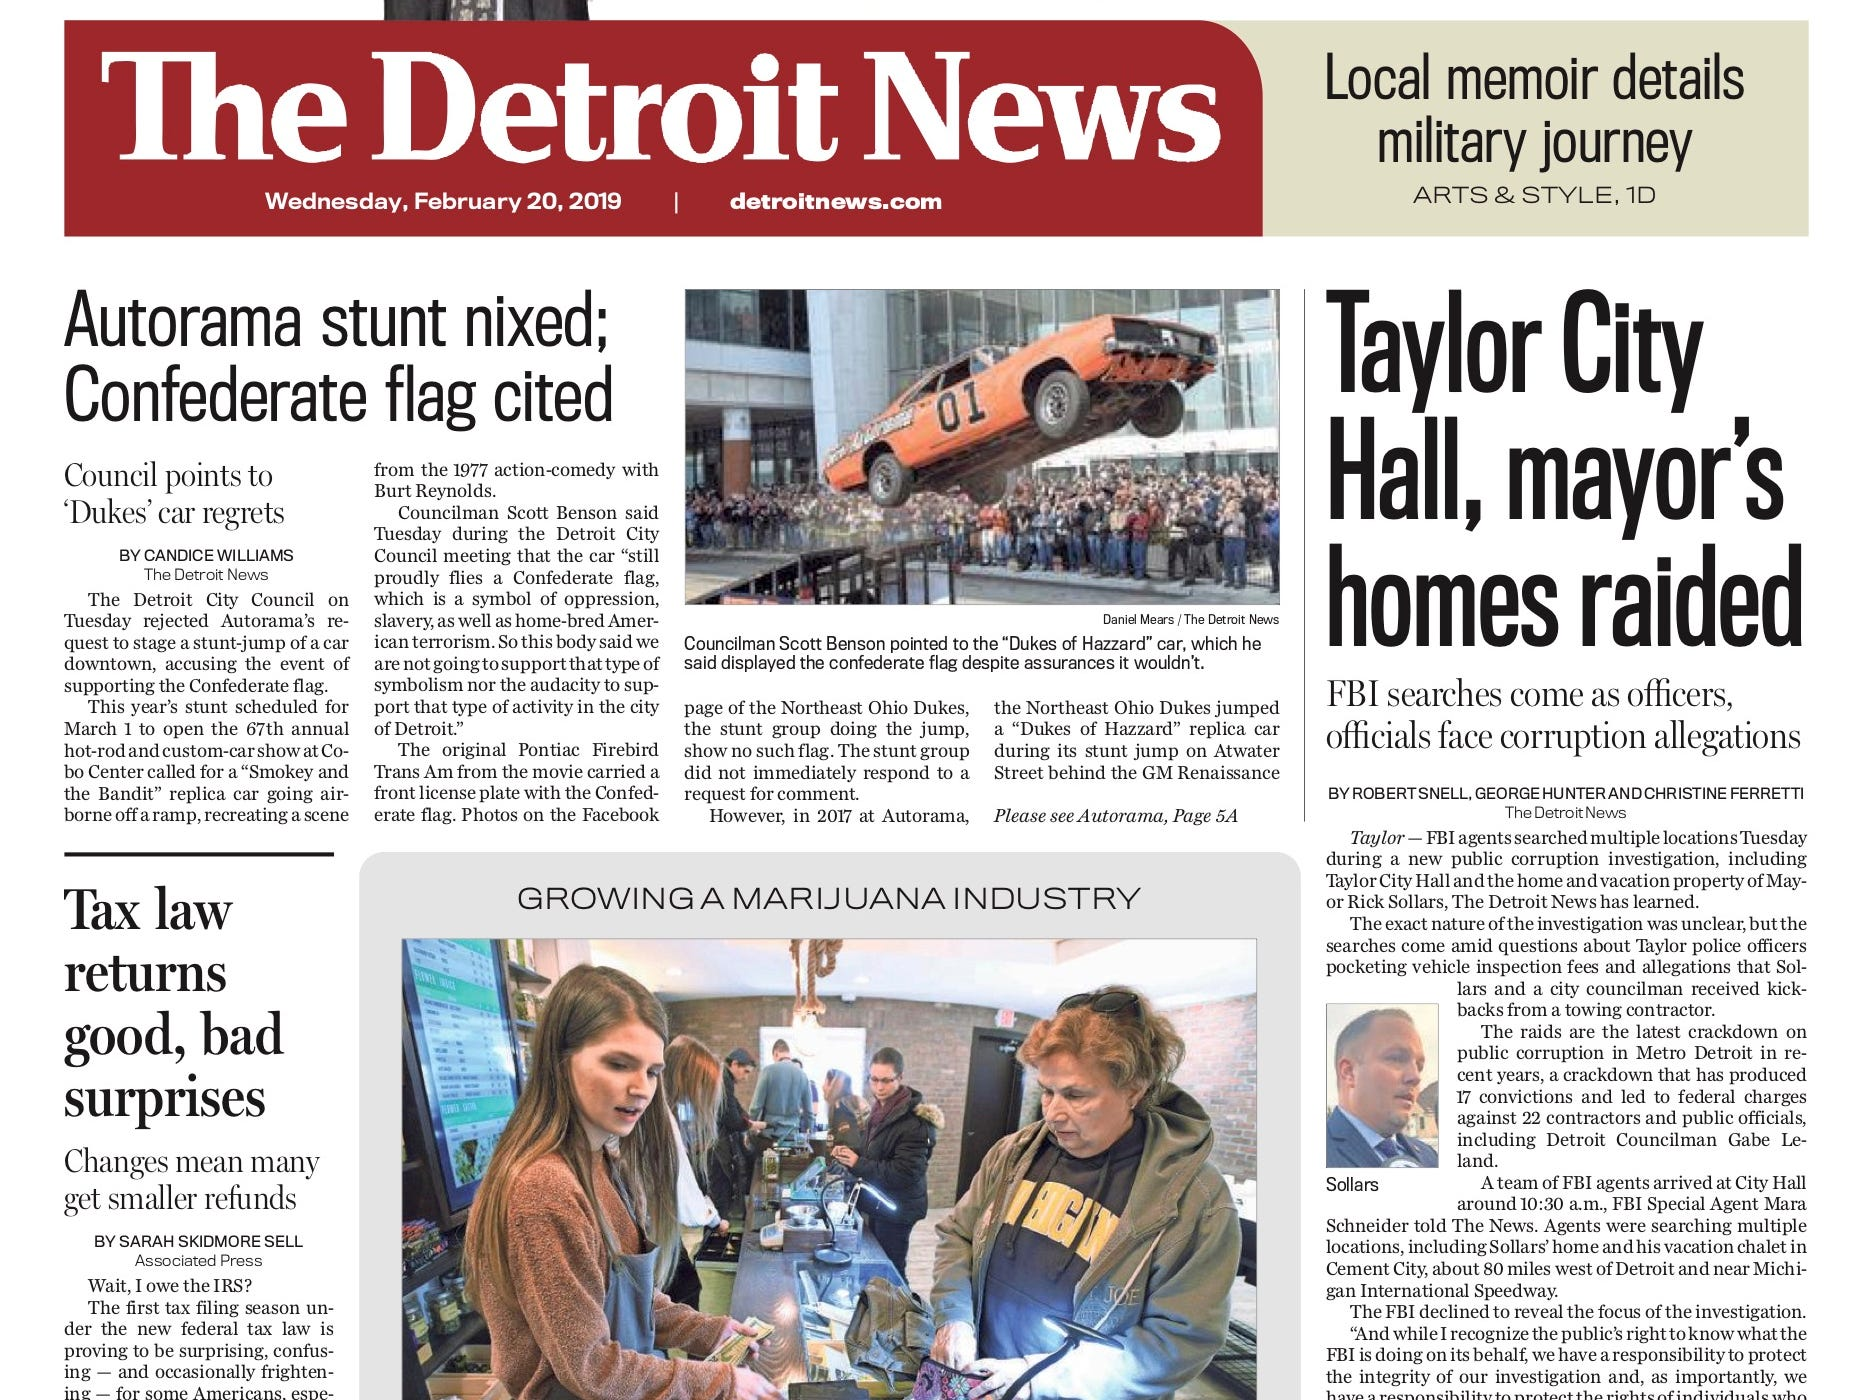 The front page of the Detroit News on February 20, 2019